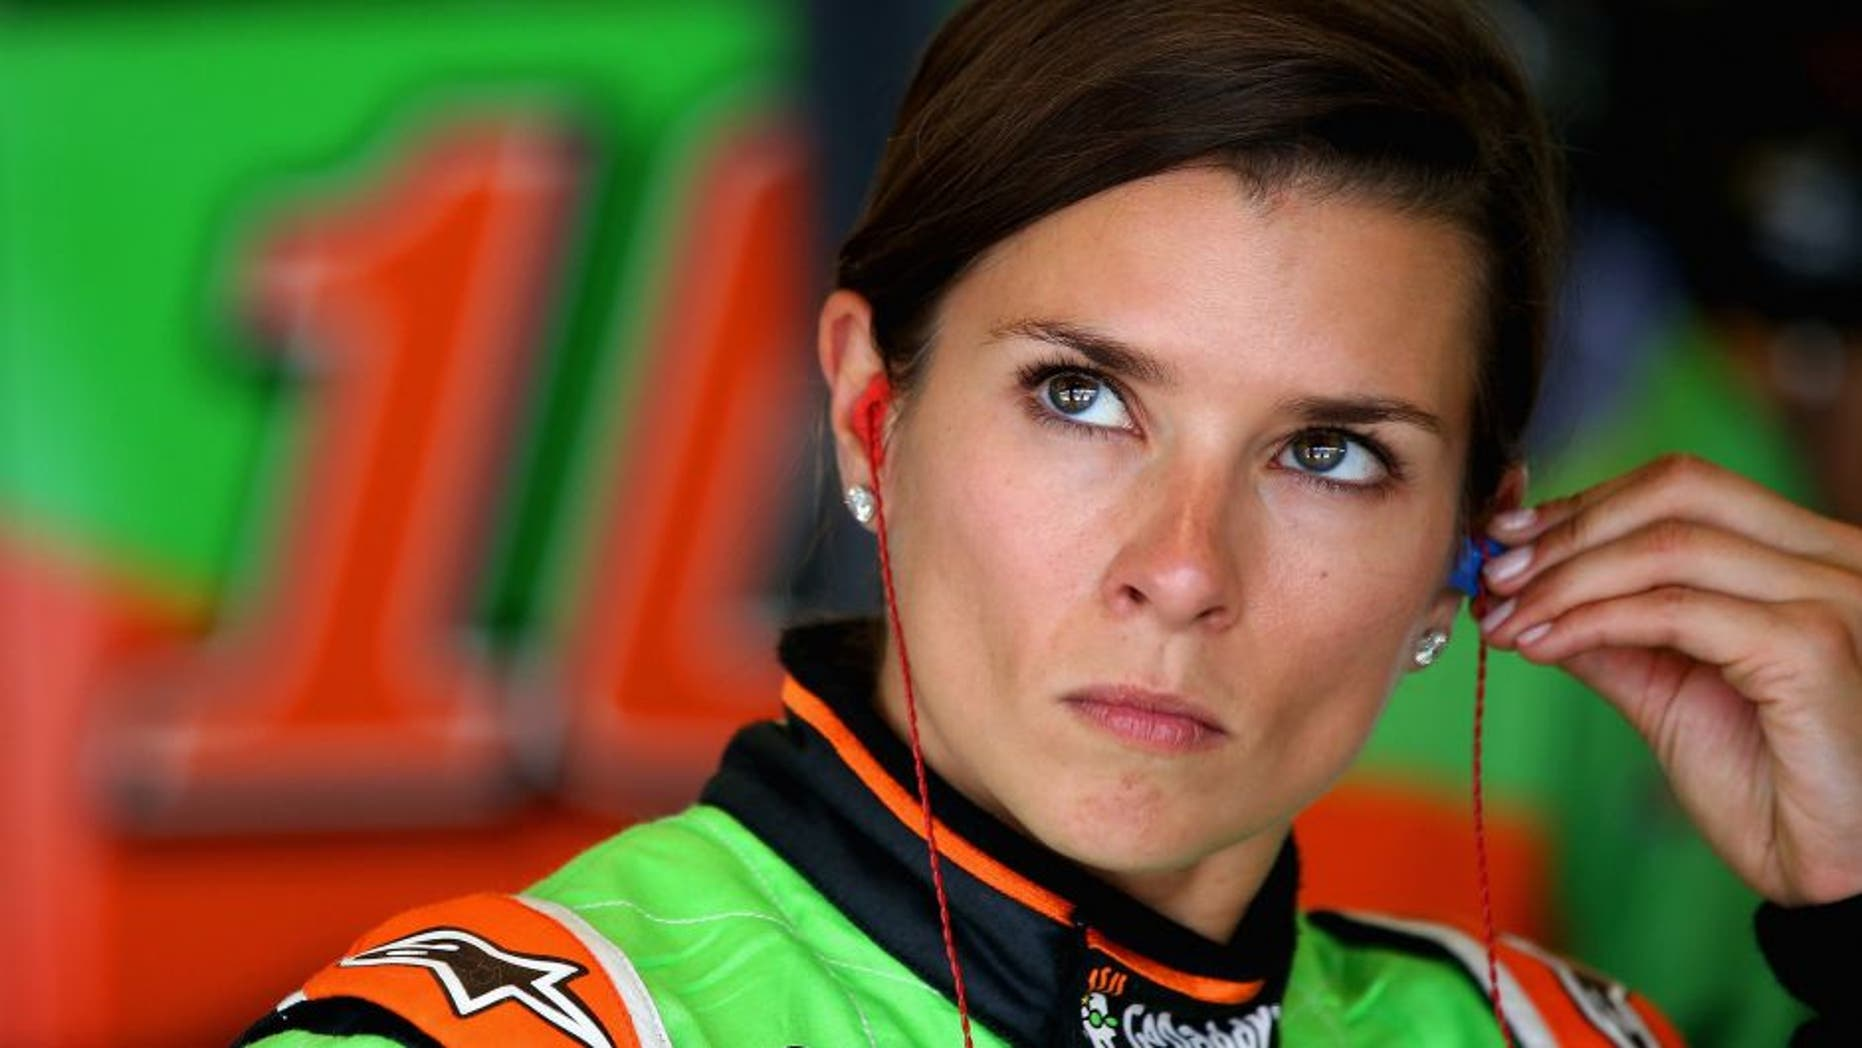 INDIANAPOLIS, IN - JULY 24: Danica Patrick, driver of the #10 GoDaddy Chevrolet, stands in the garage during practice for the NASCAR Sprint Cup Series Crown Royal Presents the Jeff Kyle 400 at the Brickyard at Indianapolis Motorspeedway on July 24, 2015 in Indianapolis, Indiana. (Photo by Sean Gardner/NASCAR via Getty Images)